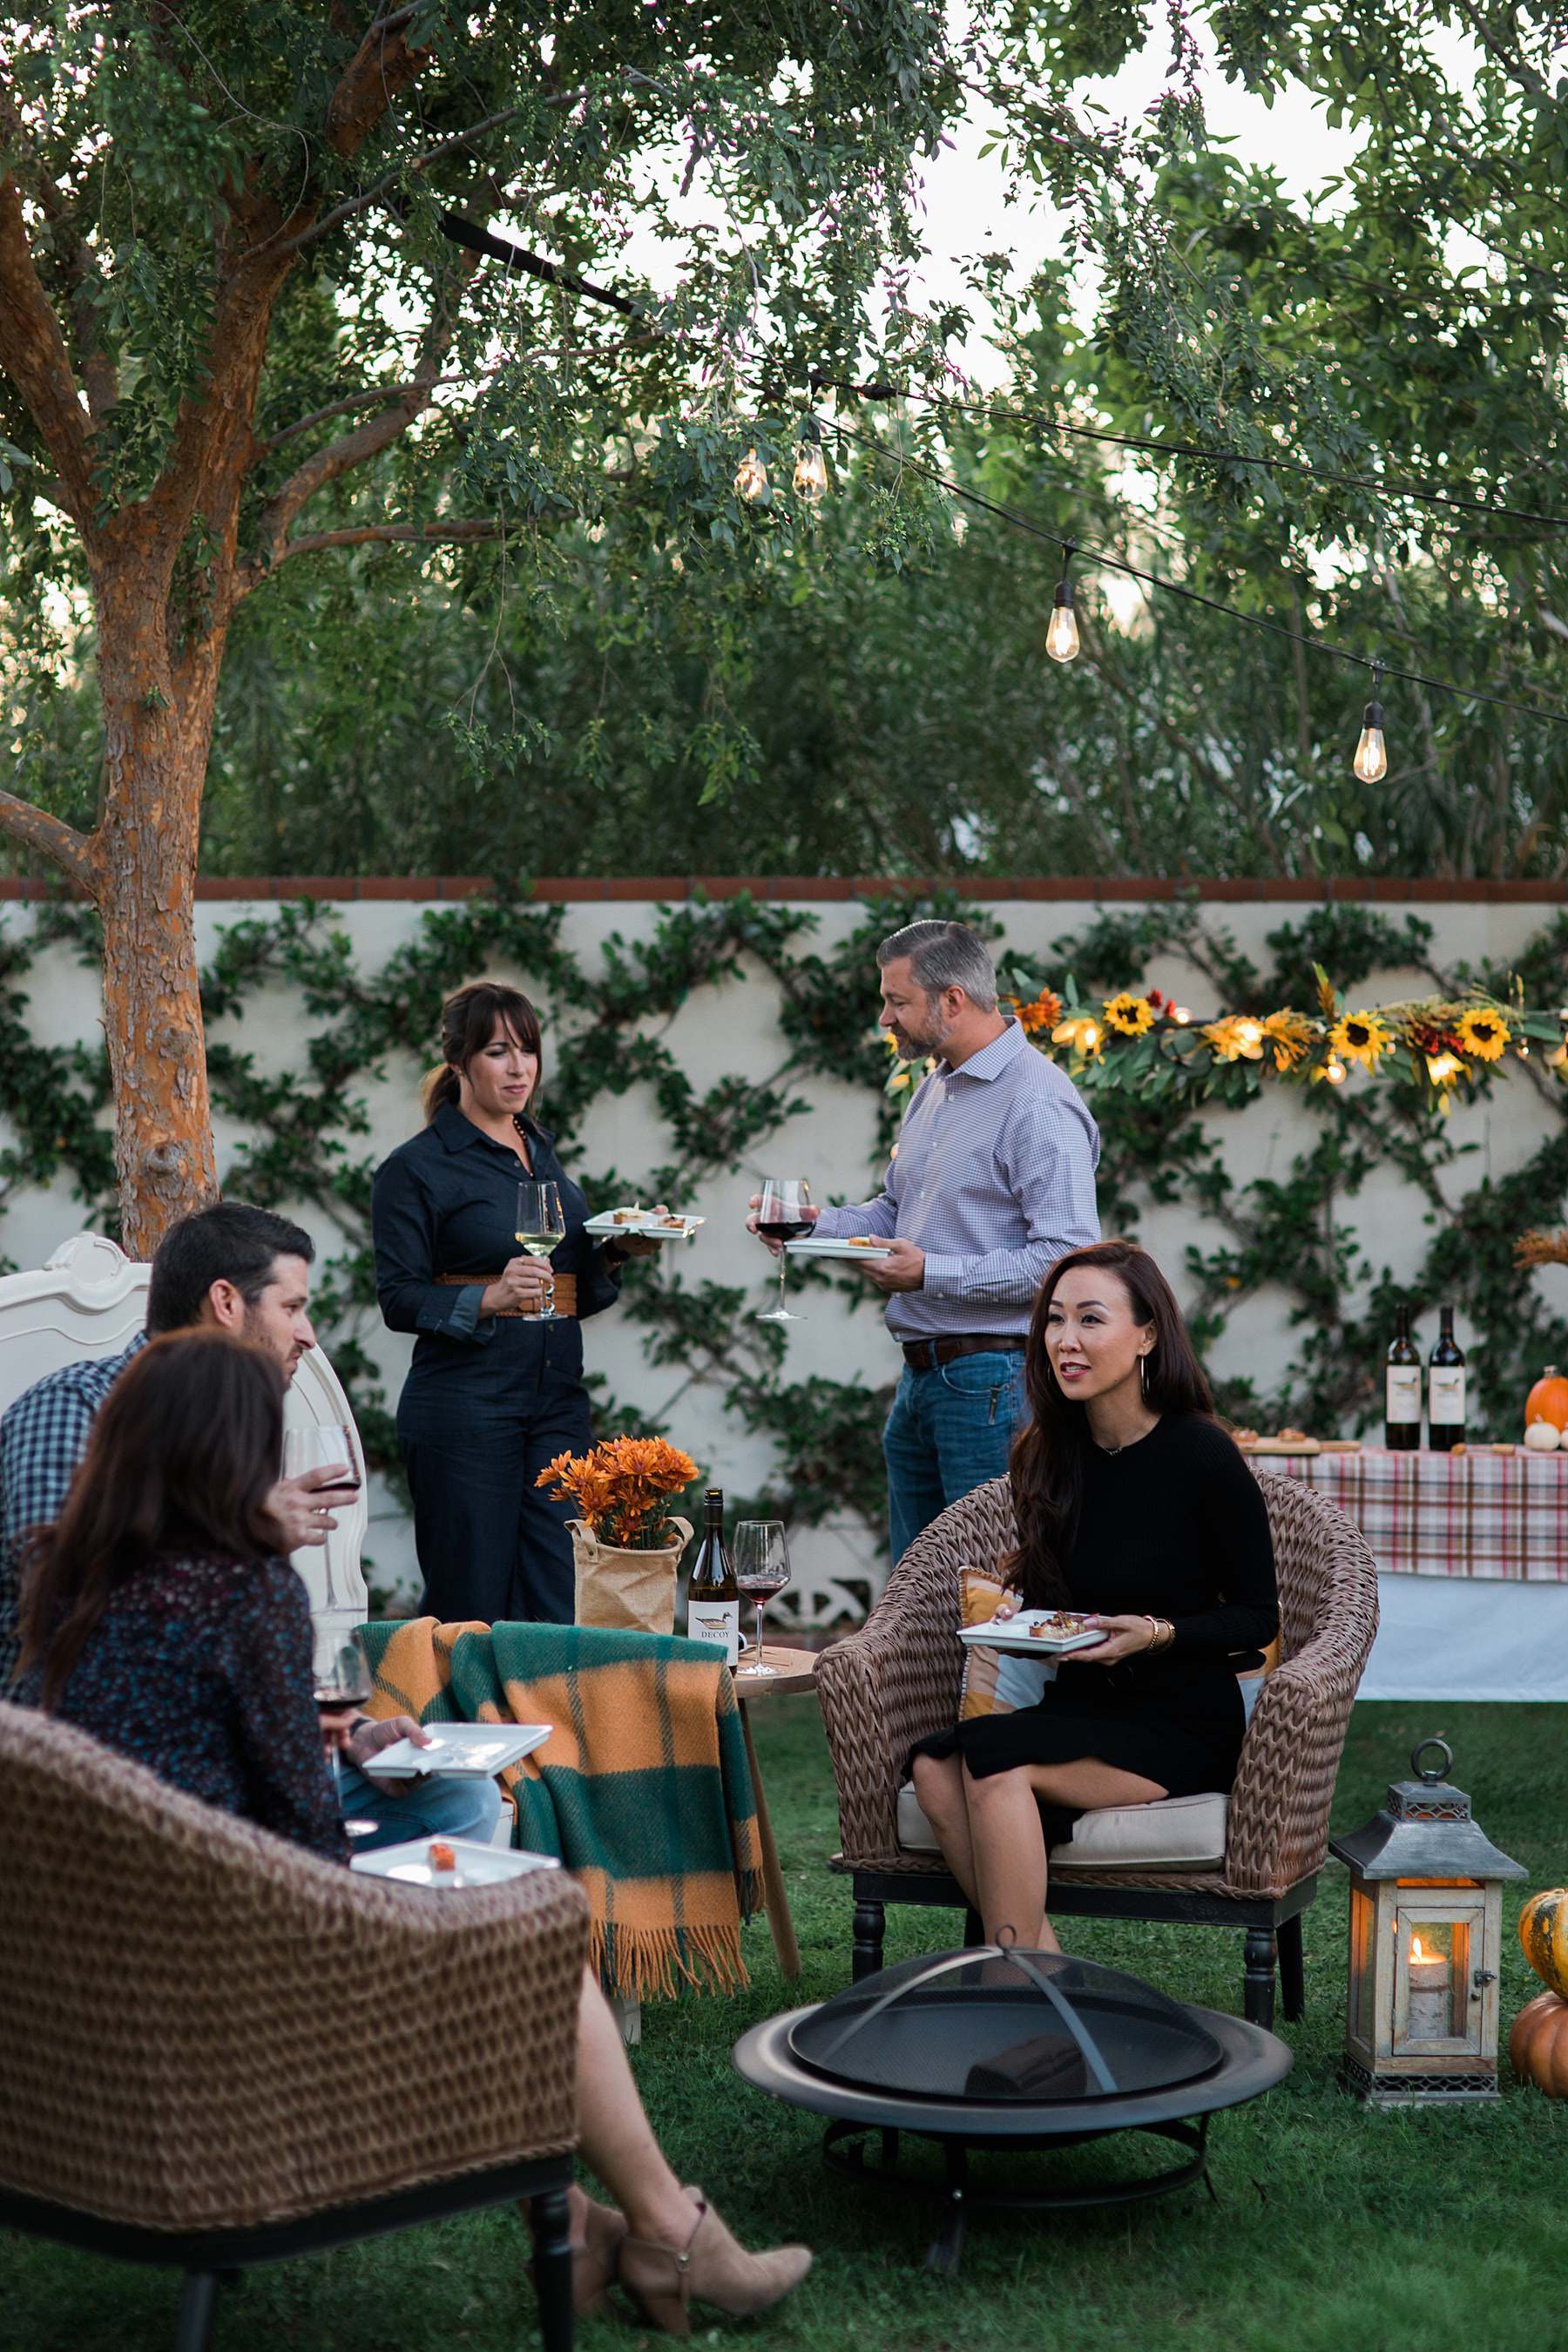 decoy wine night party Friendsgiving outdoor party catch up - Diana Elizabeth blog phoenix lifestyle entertaining hostess blogger